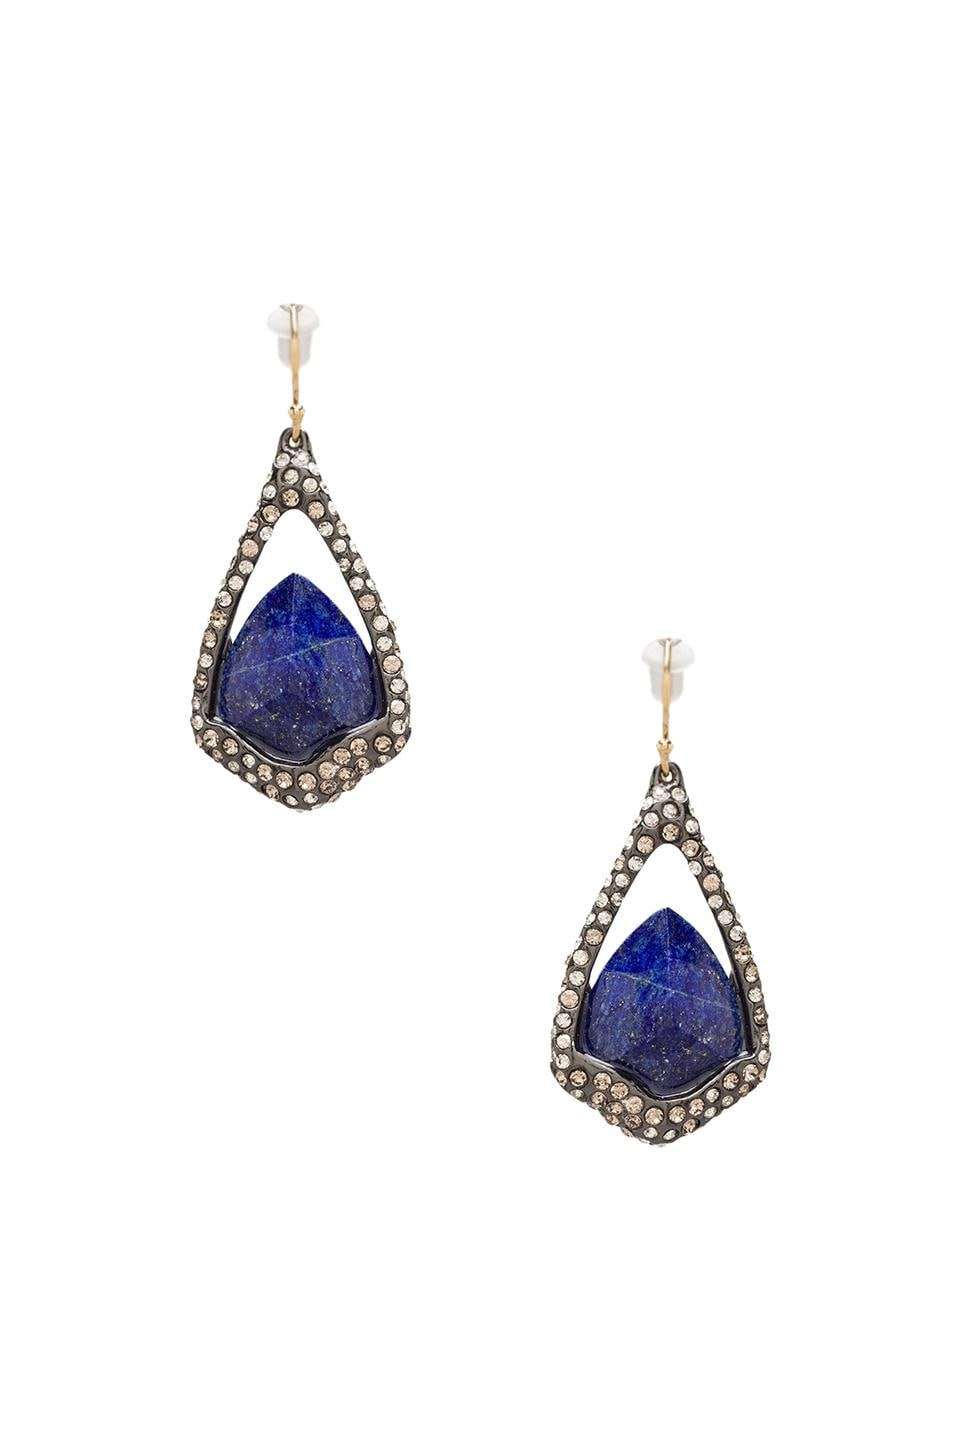 Alexis Bittar Drop Earring w/ Suspended Stone in Lapis